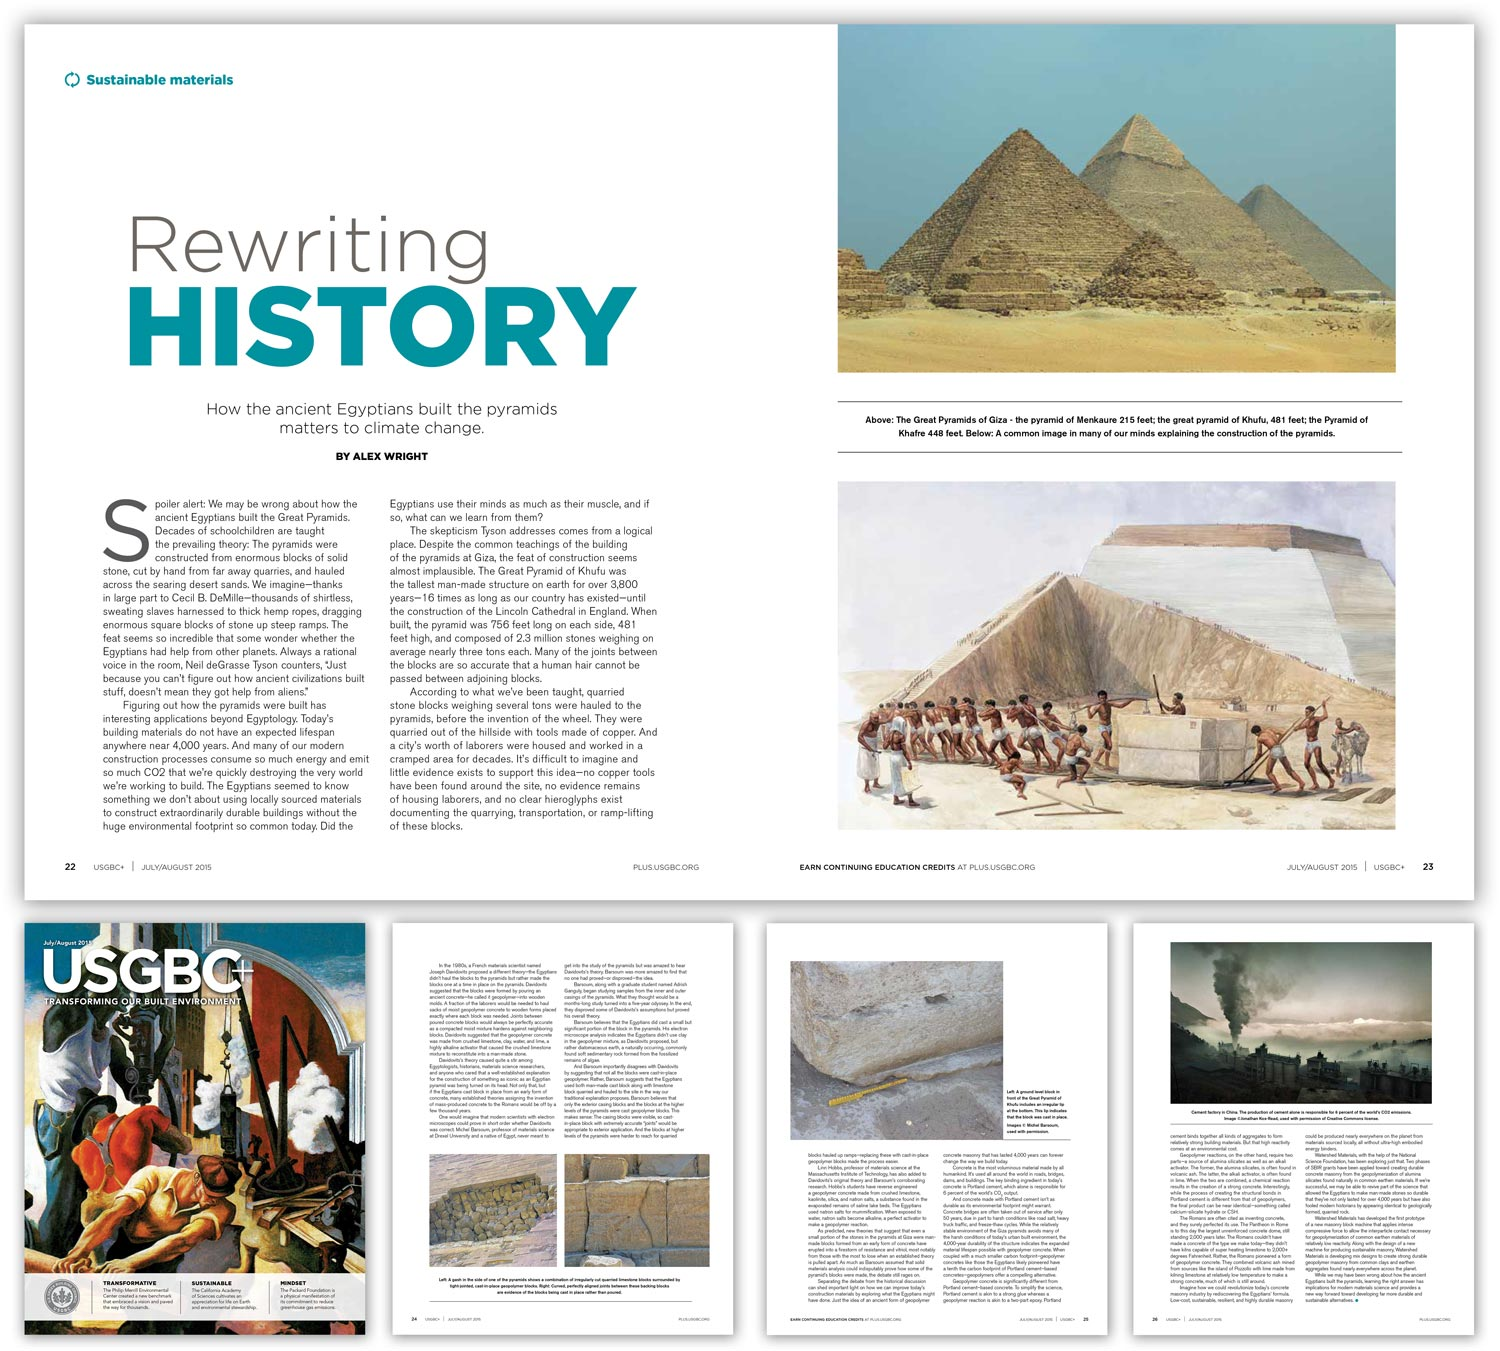 "USGBC Magazine August 2015    ""Figuring out how the pyramids were built has interesting applications beyond Egyptology. Today's building materials do not have an expected lifespan anywhere near 4,000 years. And many of our modern construction processes consume so much energy and emit so much CO2 that we're quickly destroying the very world we're working to build.""  ""If Watershed Materials is successful, we may be able to revive part of the science that allowed the Egyptians to make man-made stones so durable that they've not only lasted for over 4,000 years but have also fooled modern historians by appearing identical to geologically formed, quarried rock."""